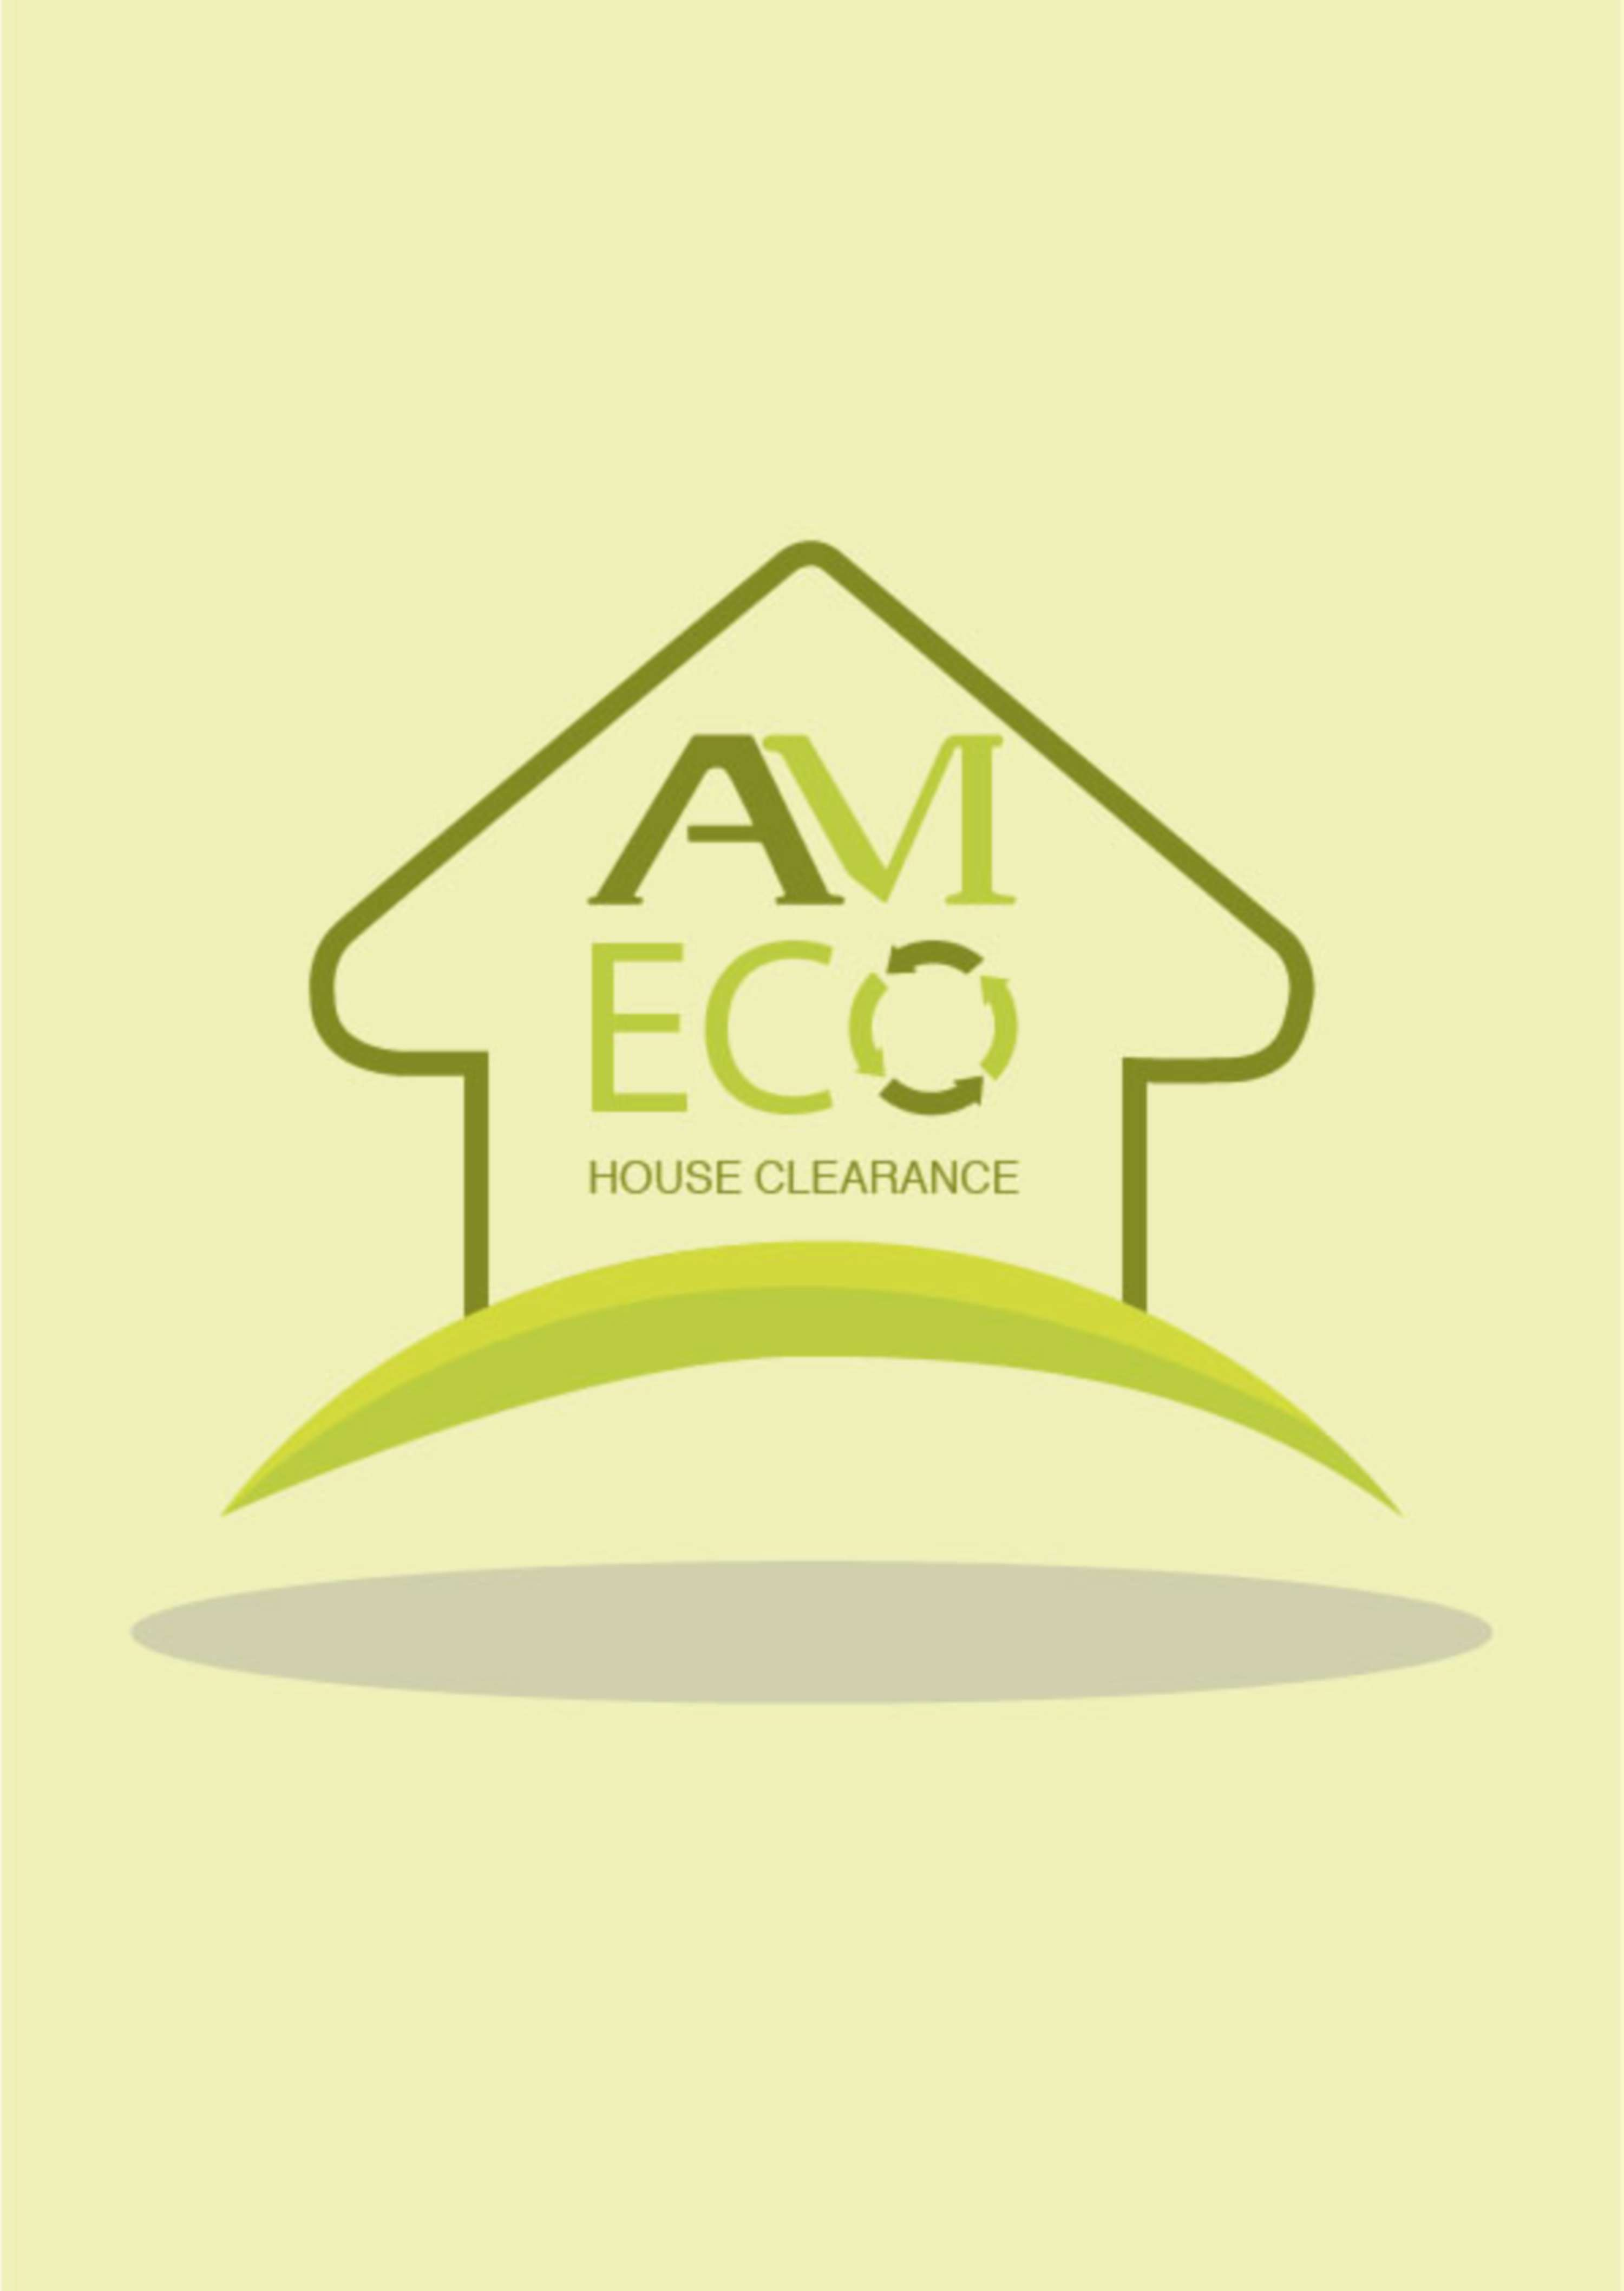 Am Eco Clearance Logo Design The Dots